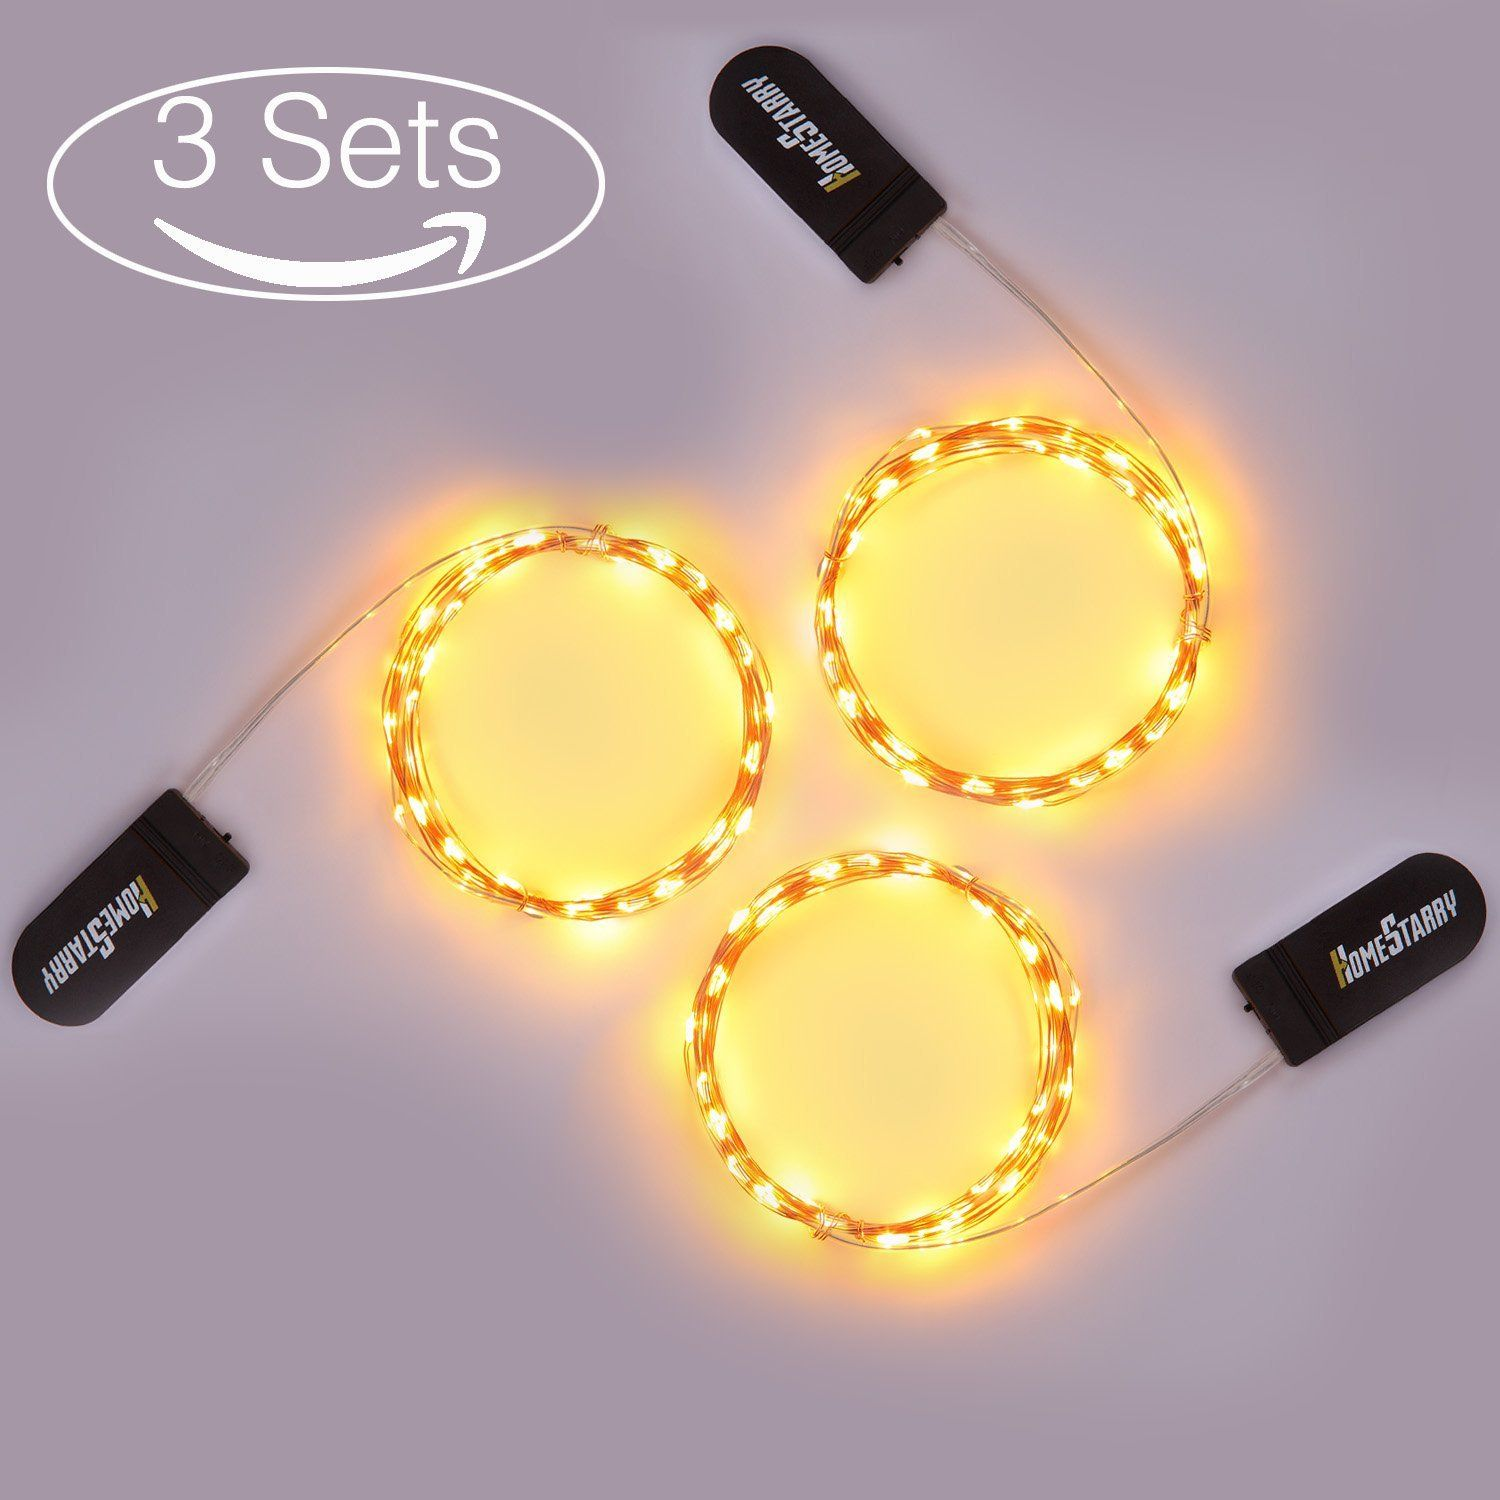 Homestarry 3 Sets 30 Warm White Color Micro Led String